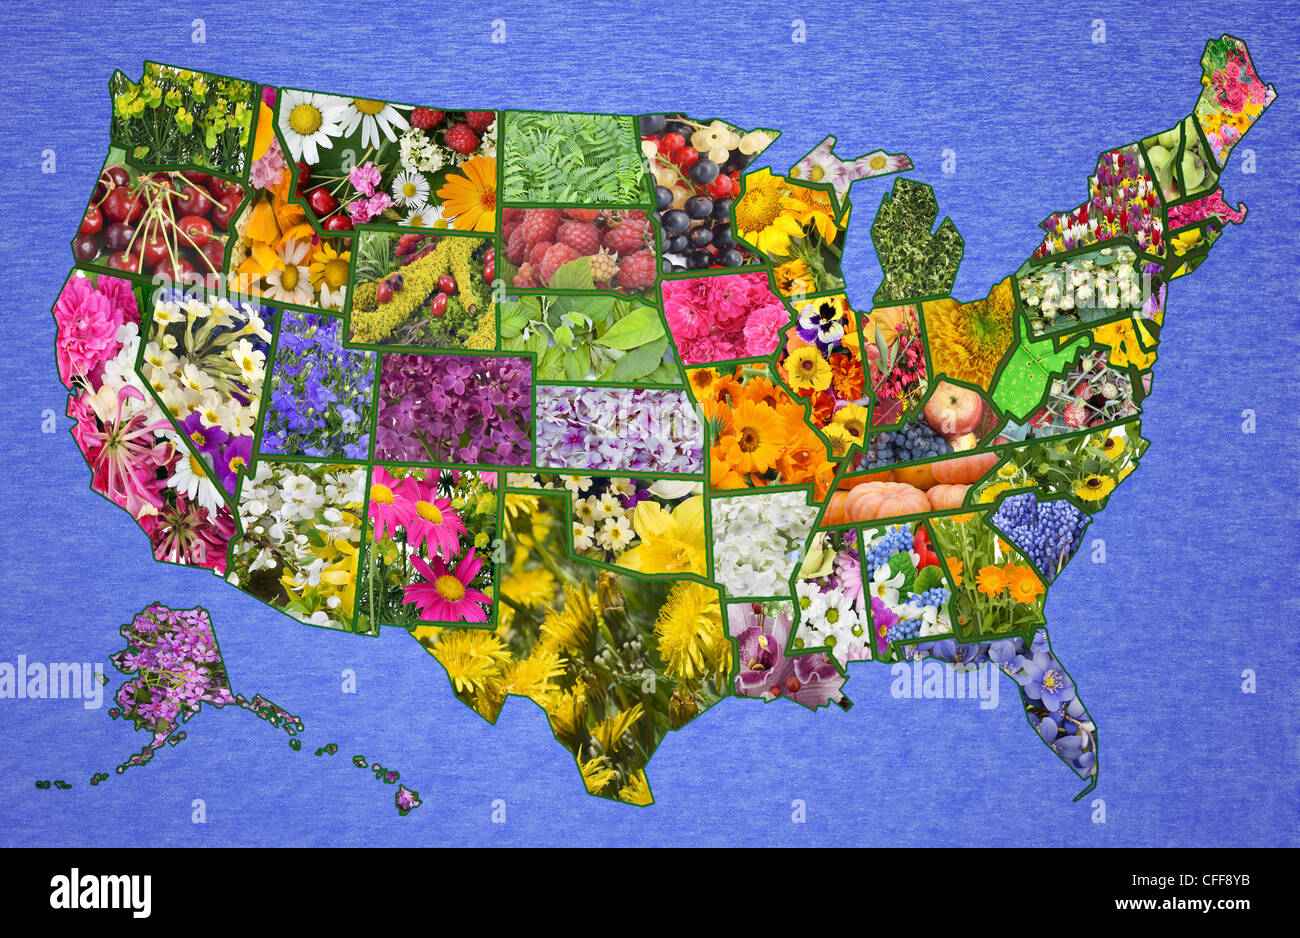 USA American High Resolution Map From Flowers And Plants Great - Free high res fill in map of the us